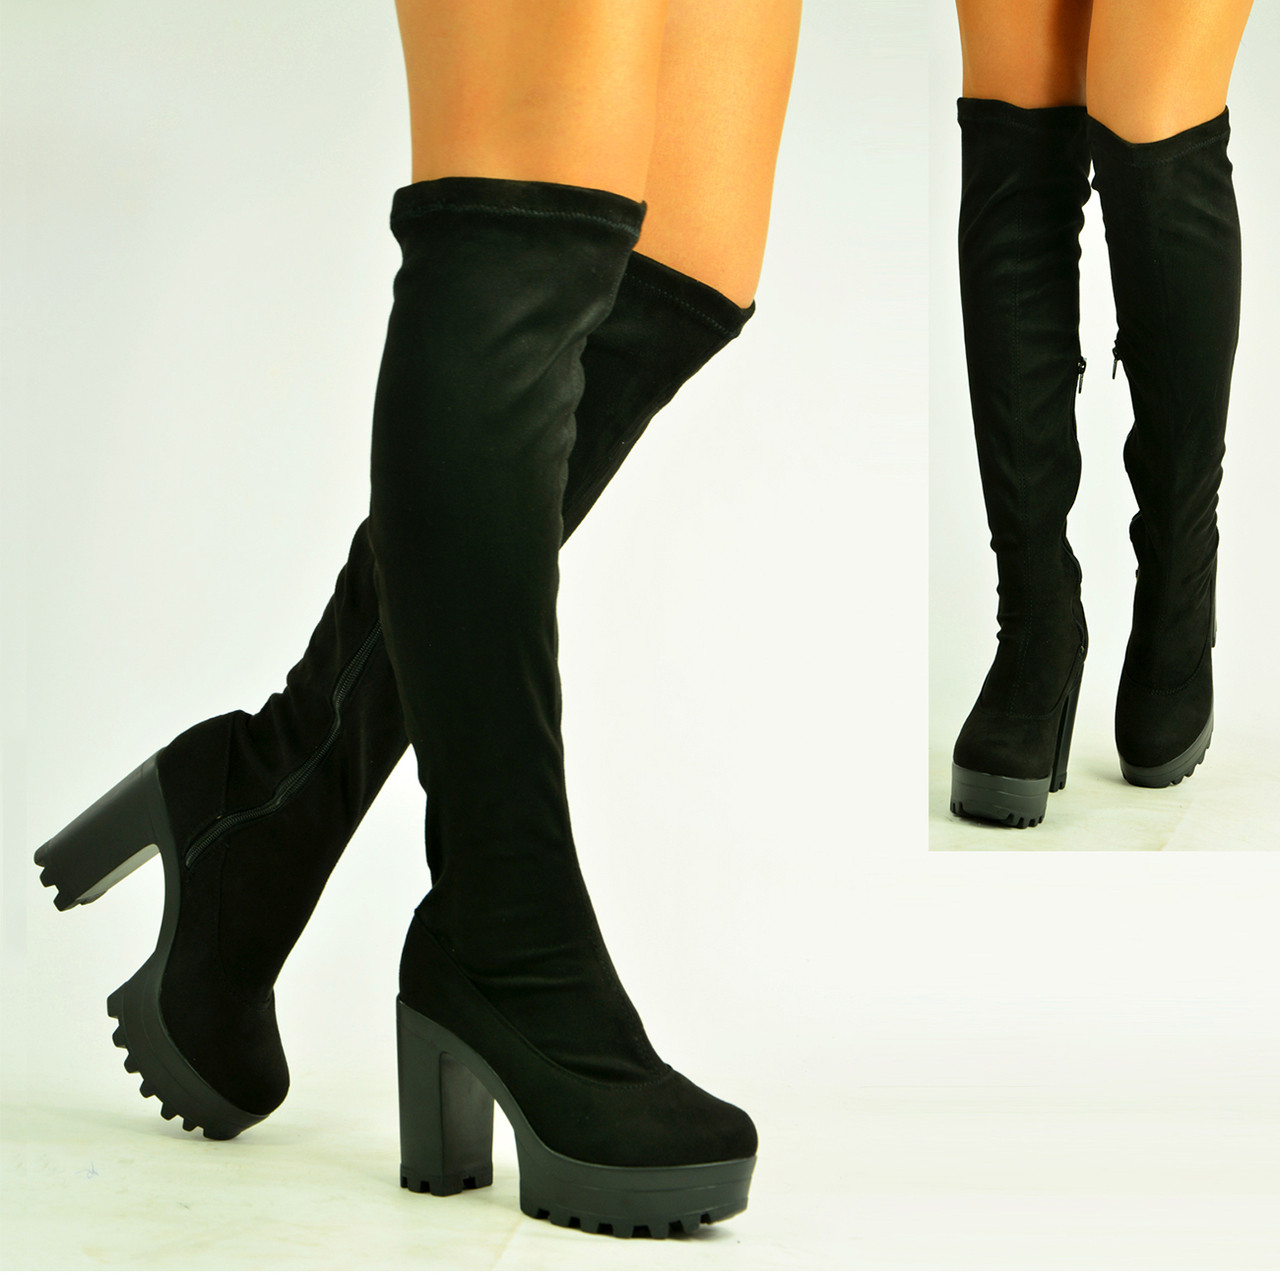 timeless design outlet boutique entire collection Ladies Knee Boots High Chunky Block Heel Platform